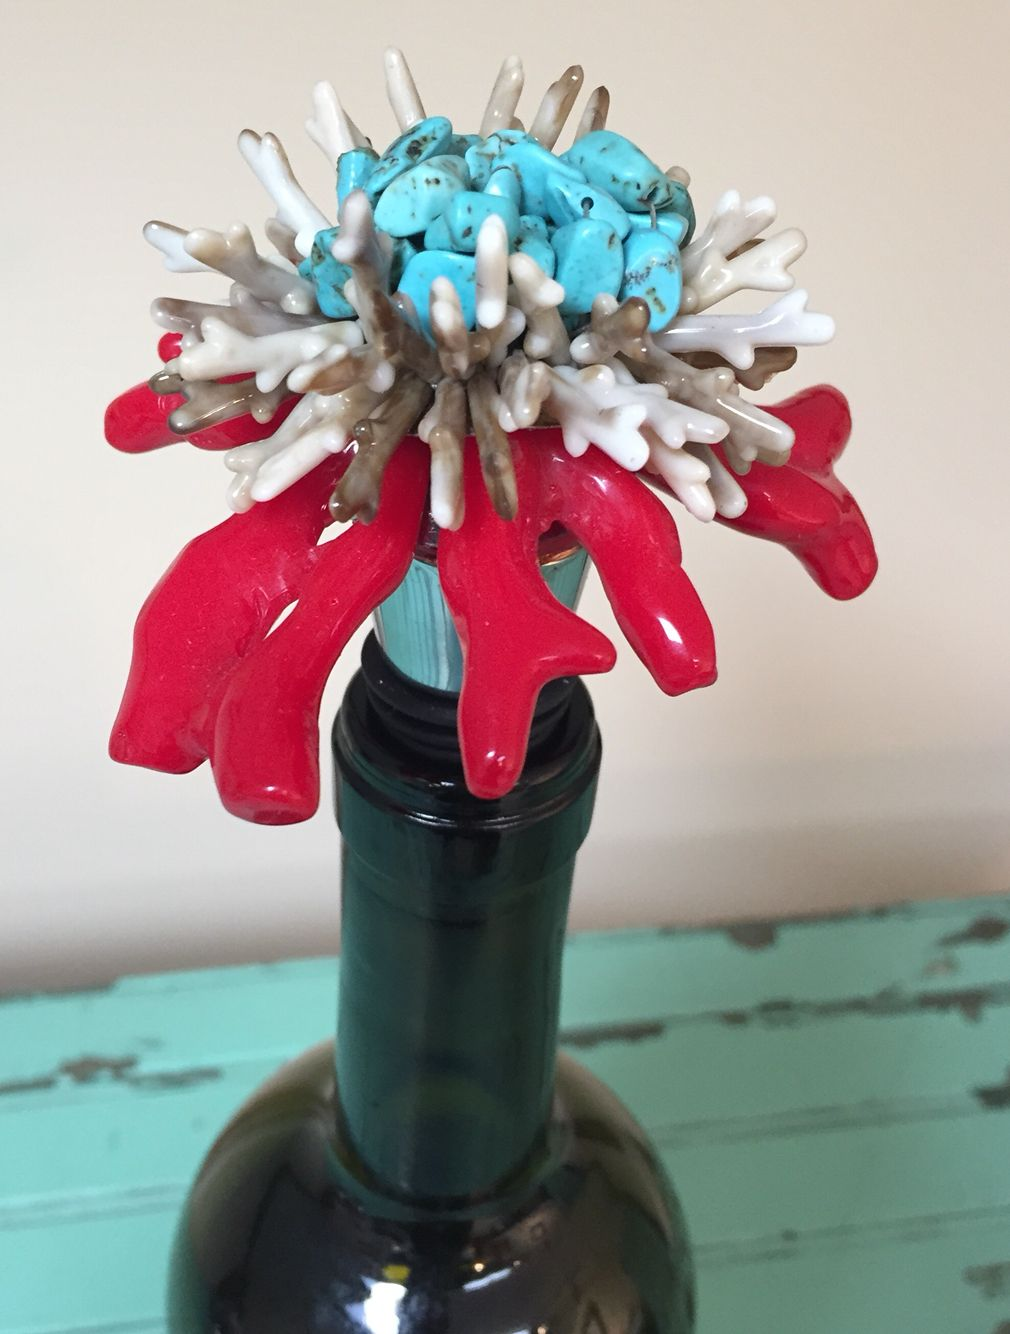 Wine Stopper Beach Summer Handmade Wine Stoppers Christmas Ornaments Holiday Decor